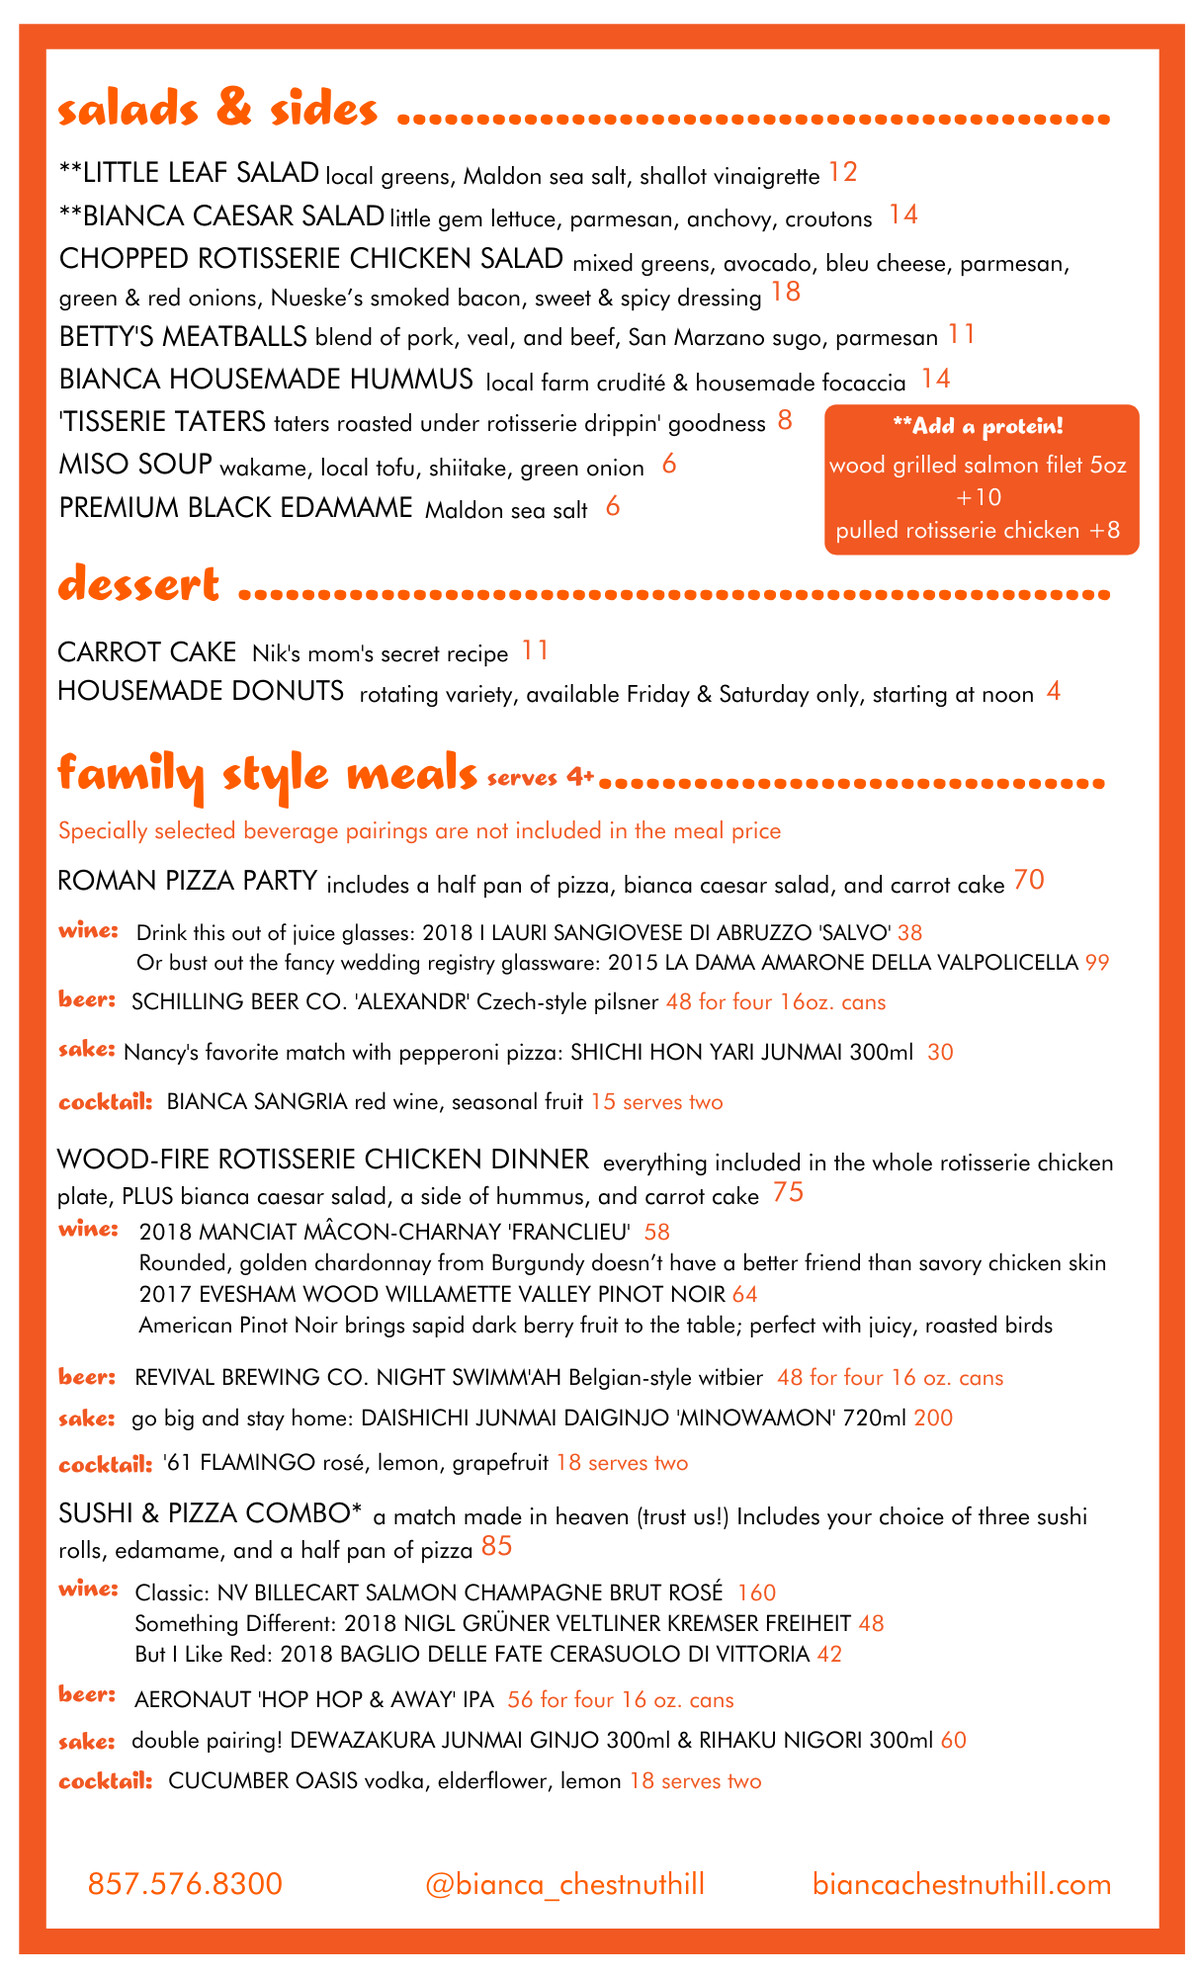 Second page of a pizzeria menu, featuring salads, sides, and more